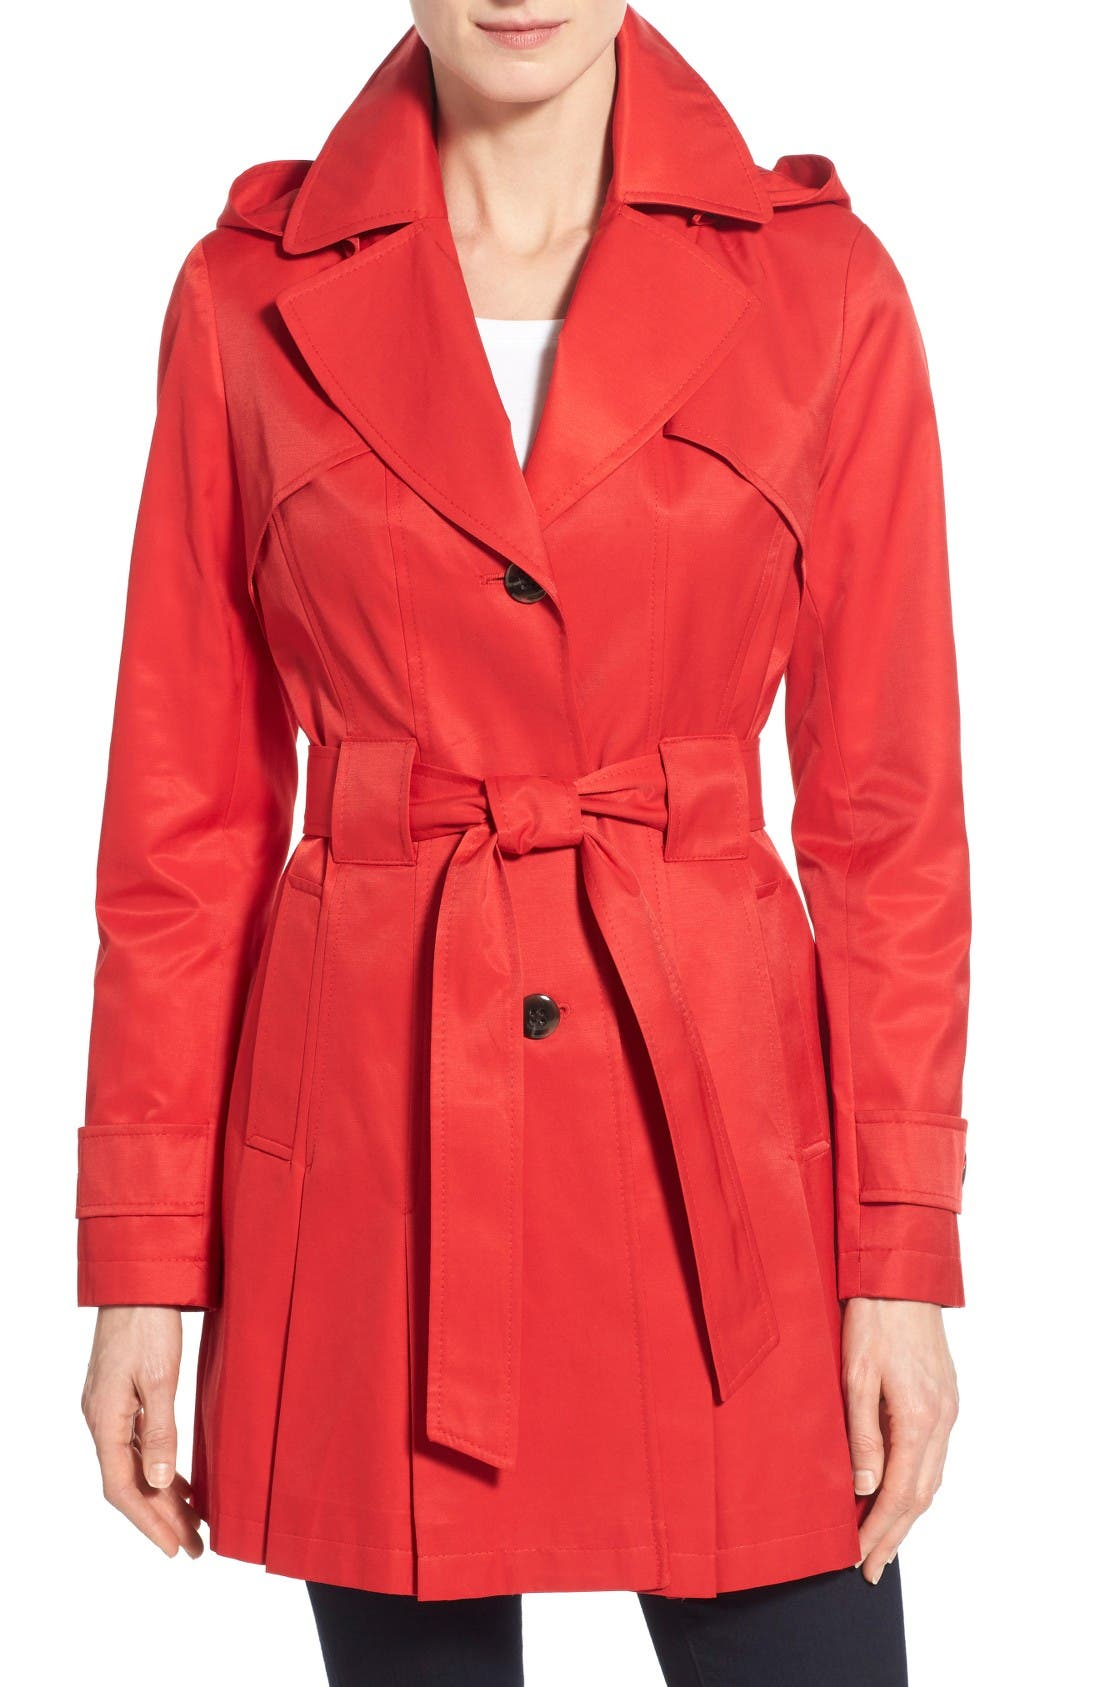 Main Image - Via Spiga 'Scarpa' Hooded Single Breasted Trench Coat (Regular & Petite)